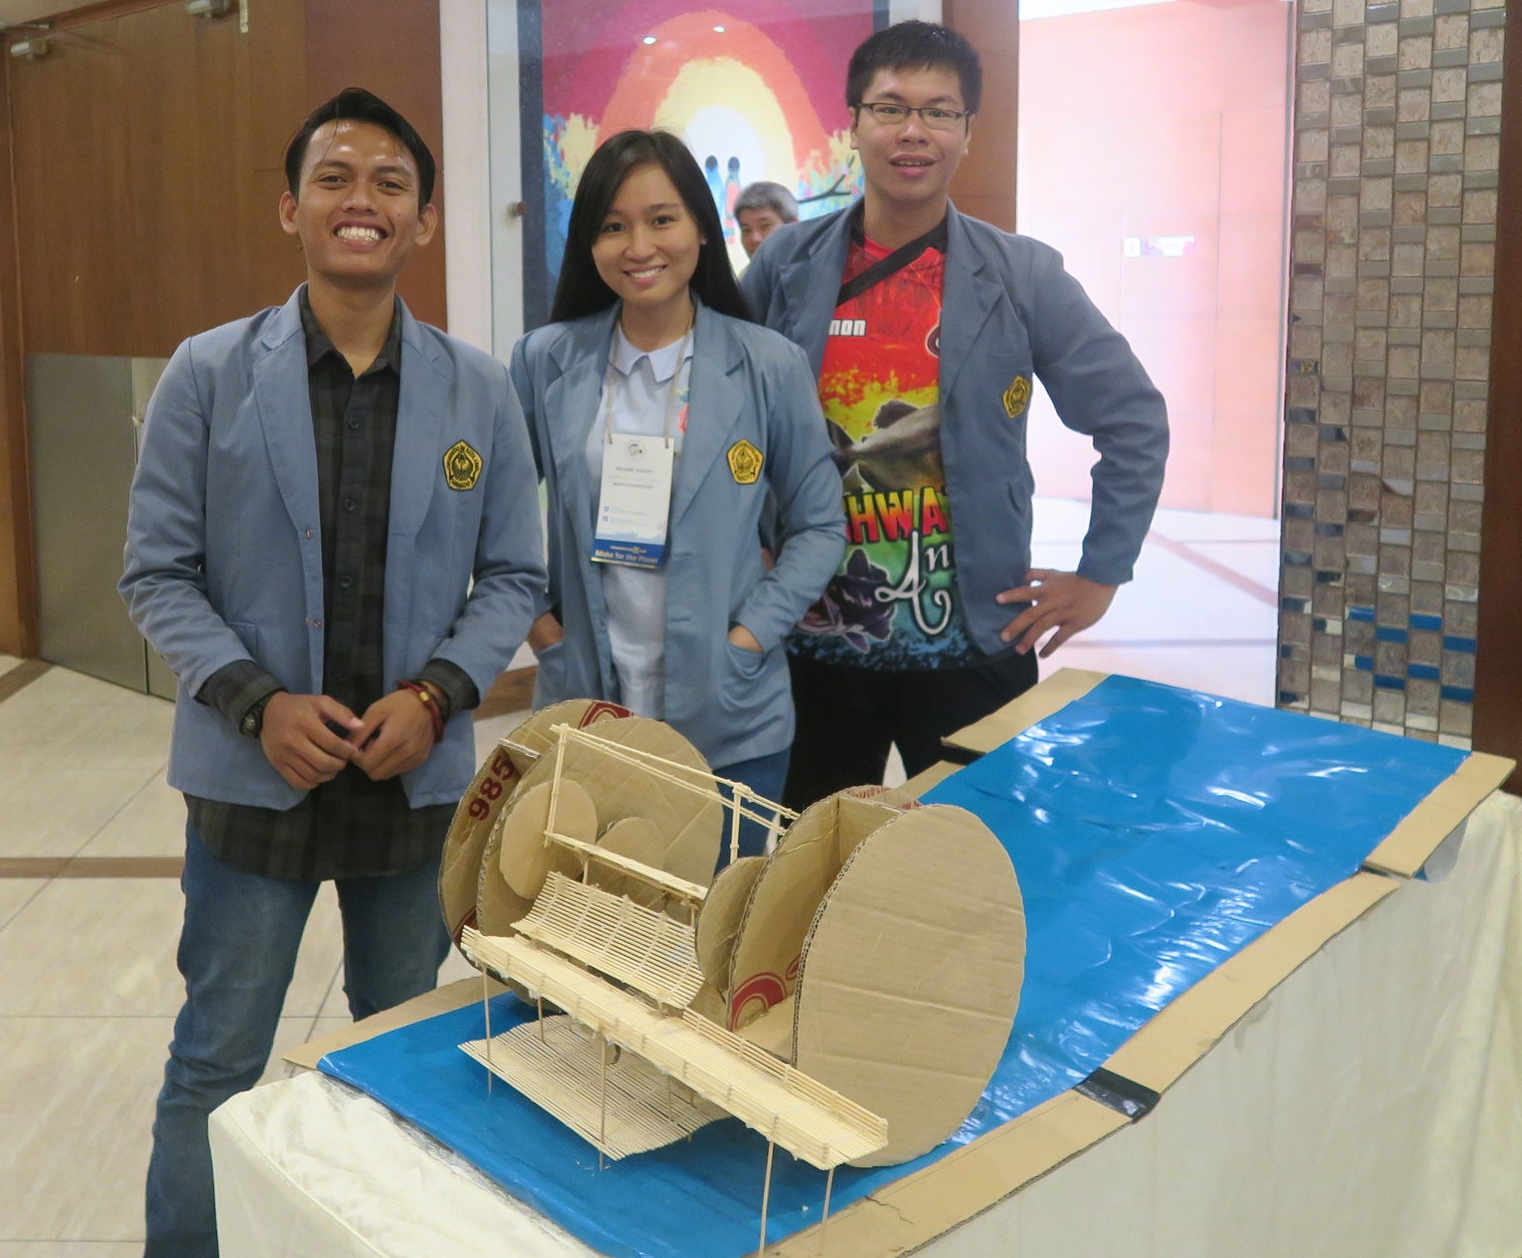 Team Sea Warrior with a model of the Winseal Watermill.